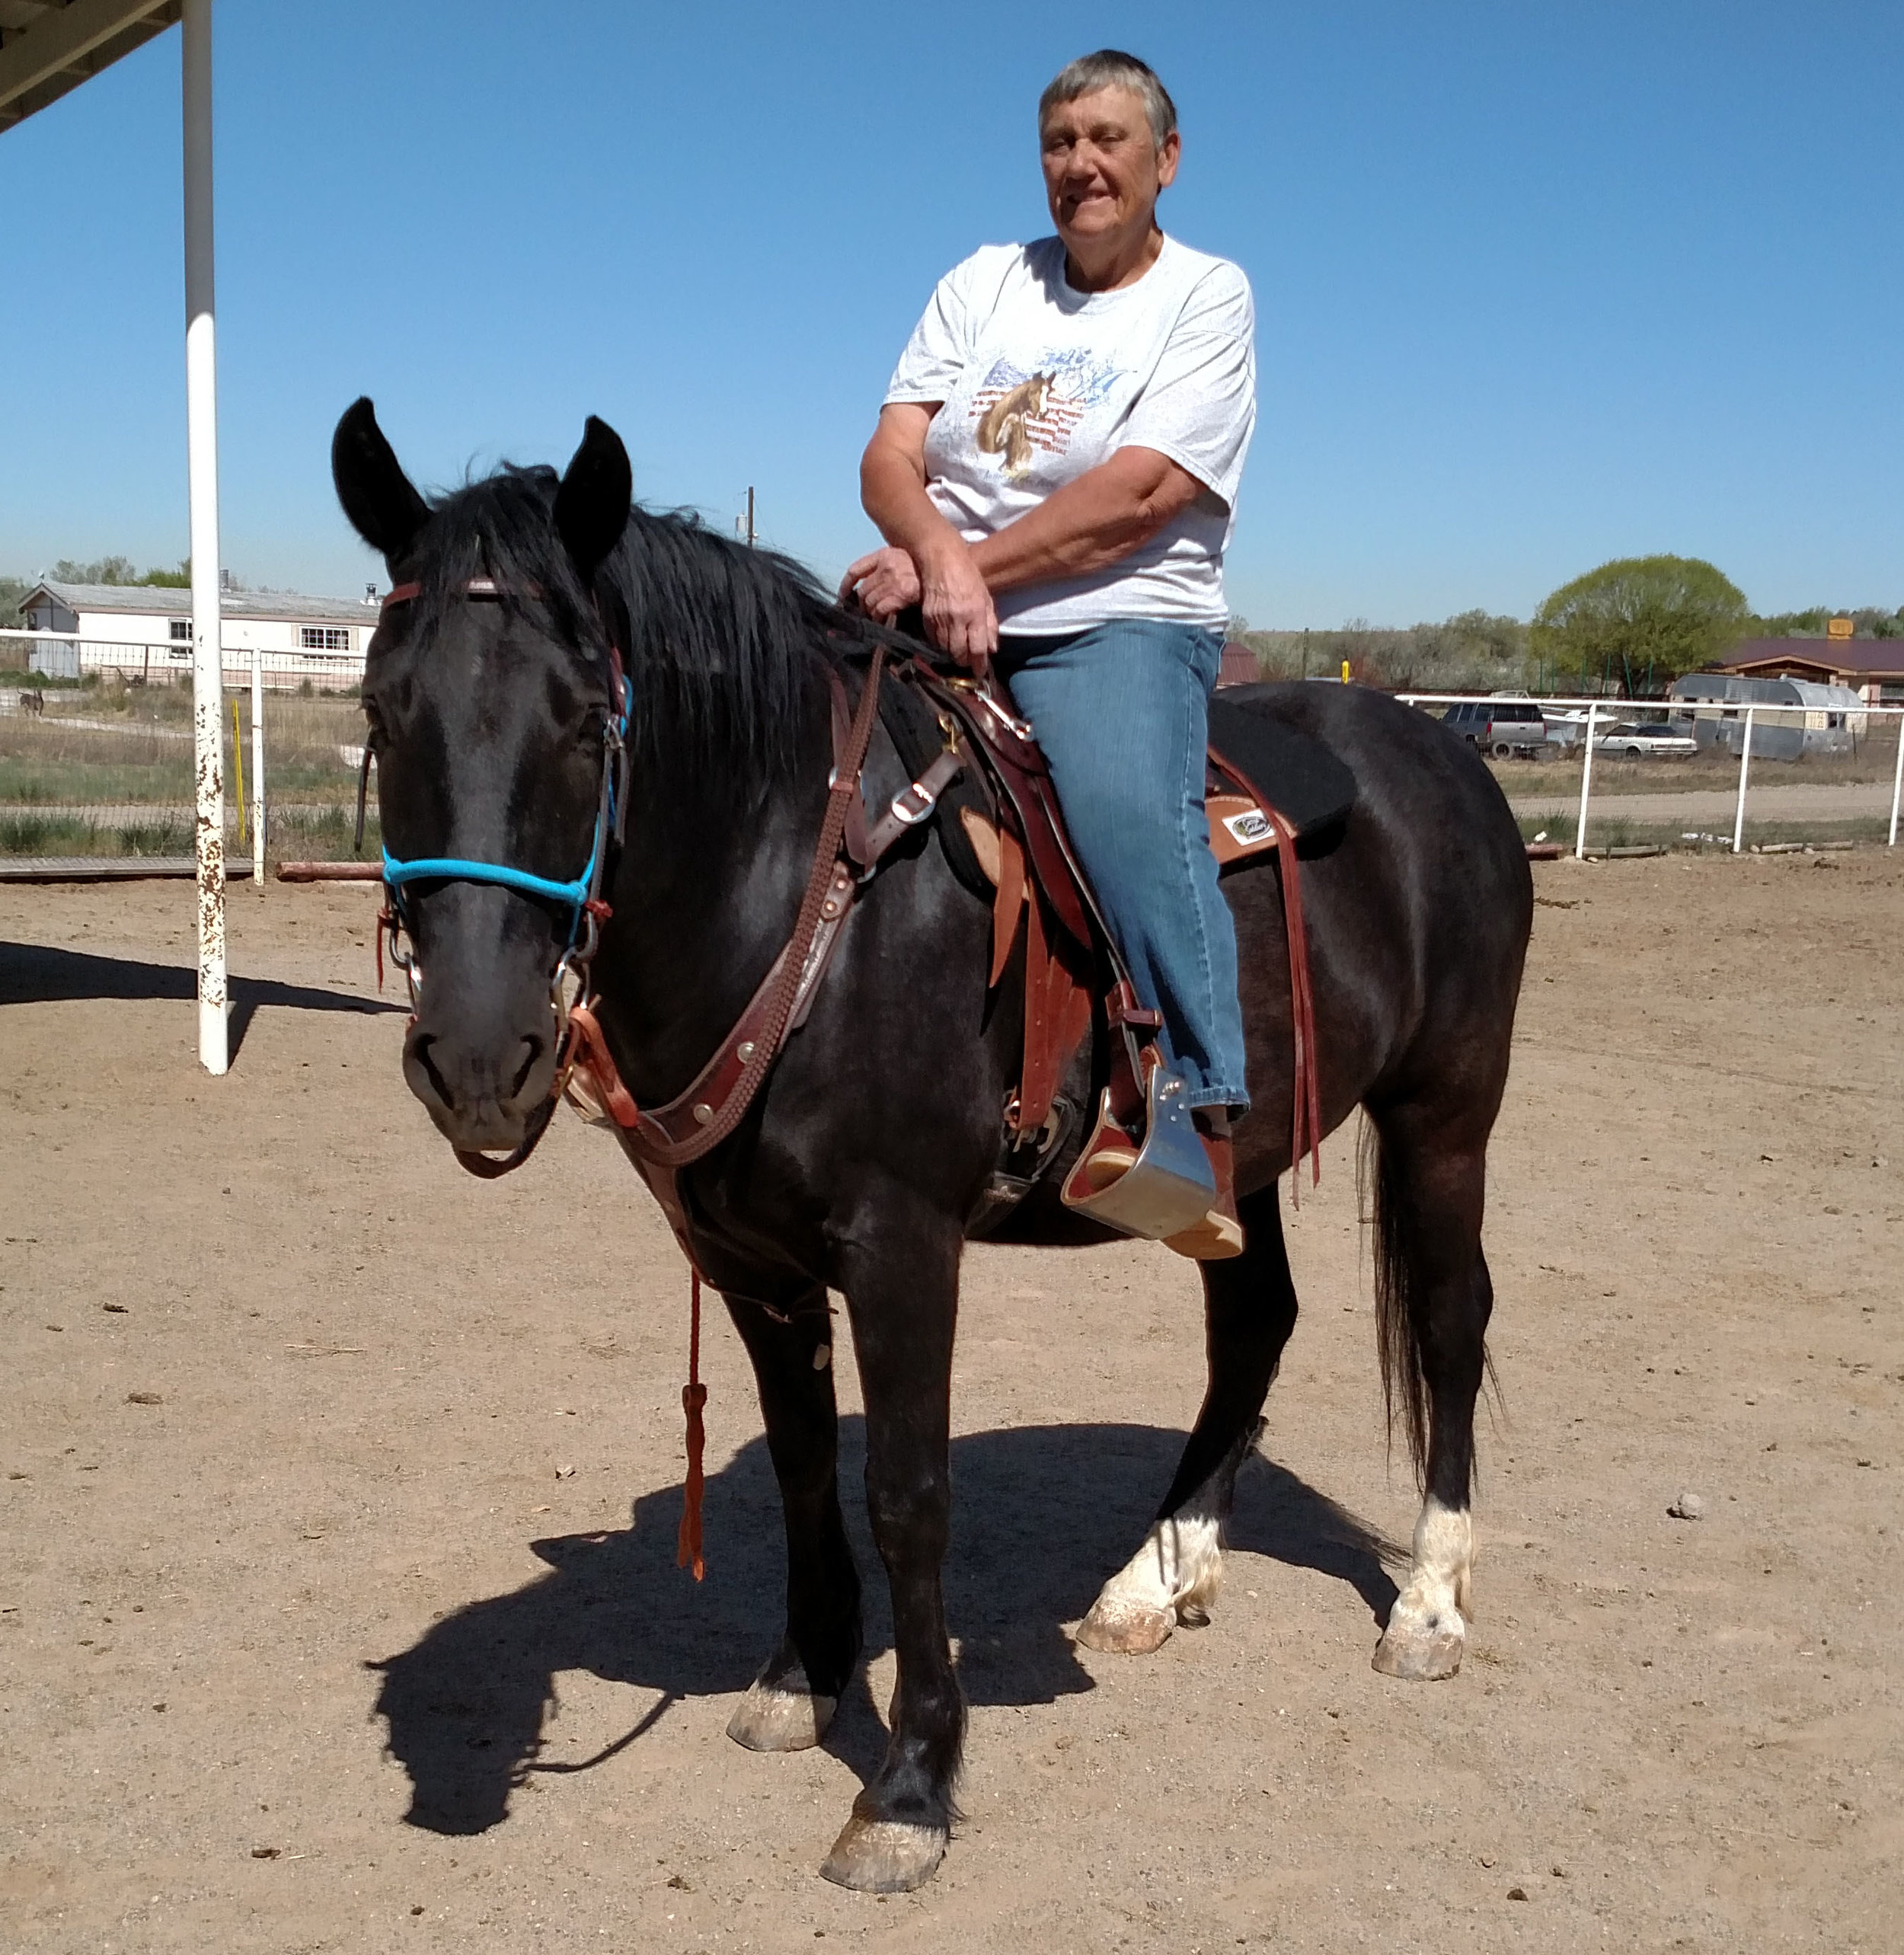 Carson - Carson was adopted as a 6-month-old stallion from the Jicarilla herb by Barbara Kiipper. He is the mustang that inspired the creation of JMHA, and because of him, 55 horses have been adopted and trained using humane horsemanship practices. He is now 10-years-old and going strong.